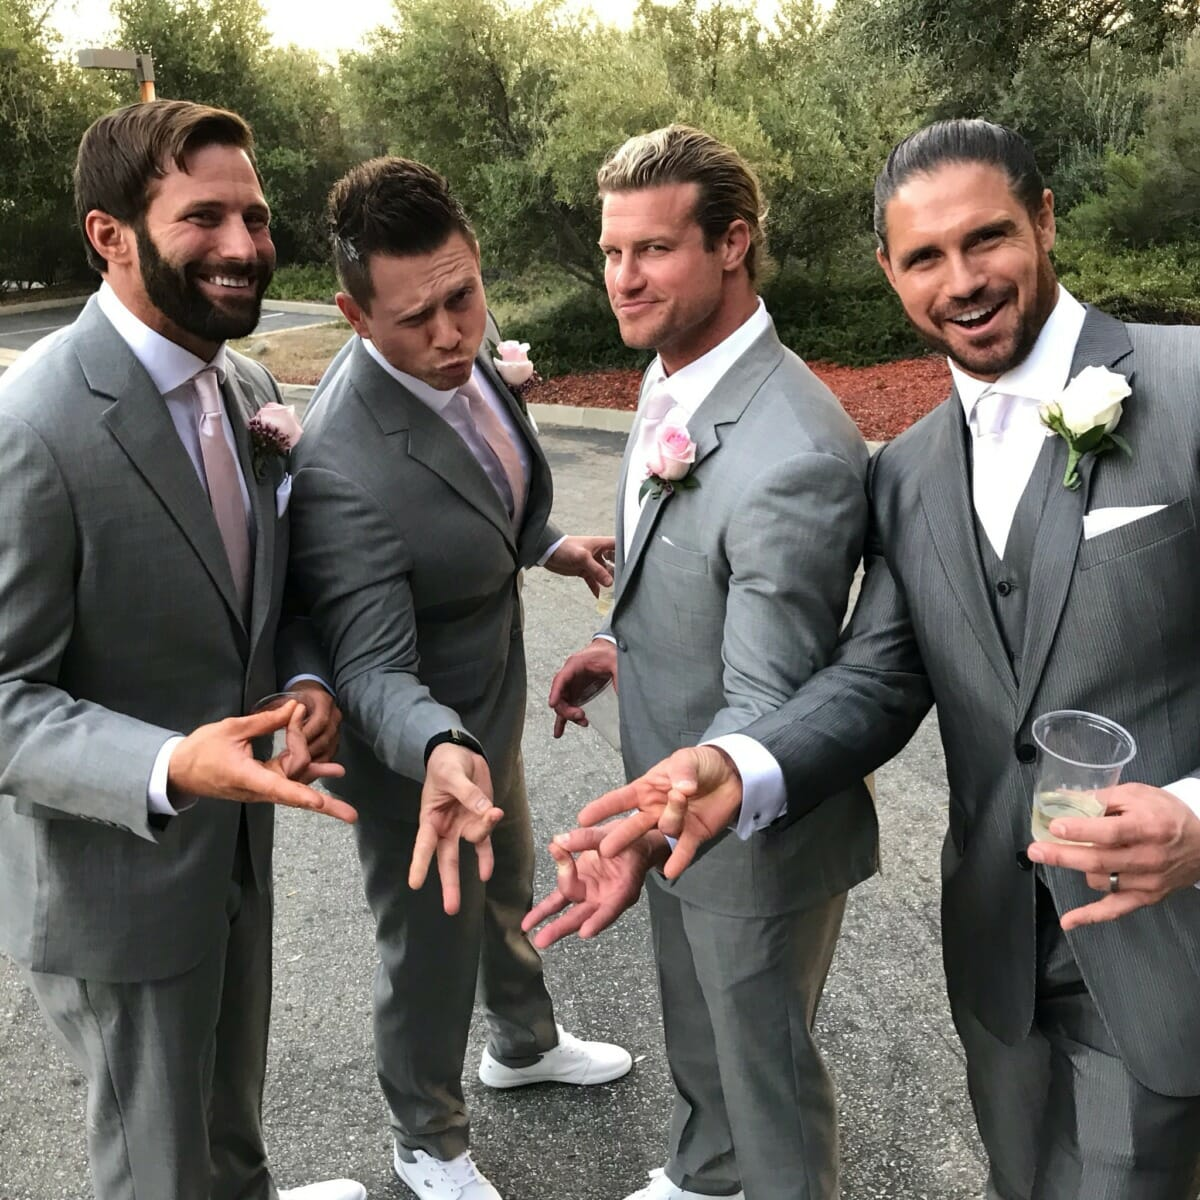 'The boys' - Matt Cardona (formerly known as Zack Ryder), The Miz, Dolph Ziggler, and John Morrison and Morrison's wedding.